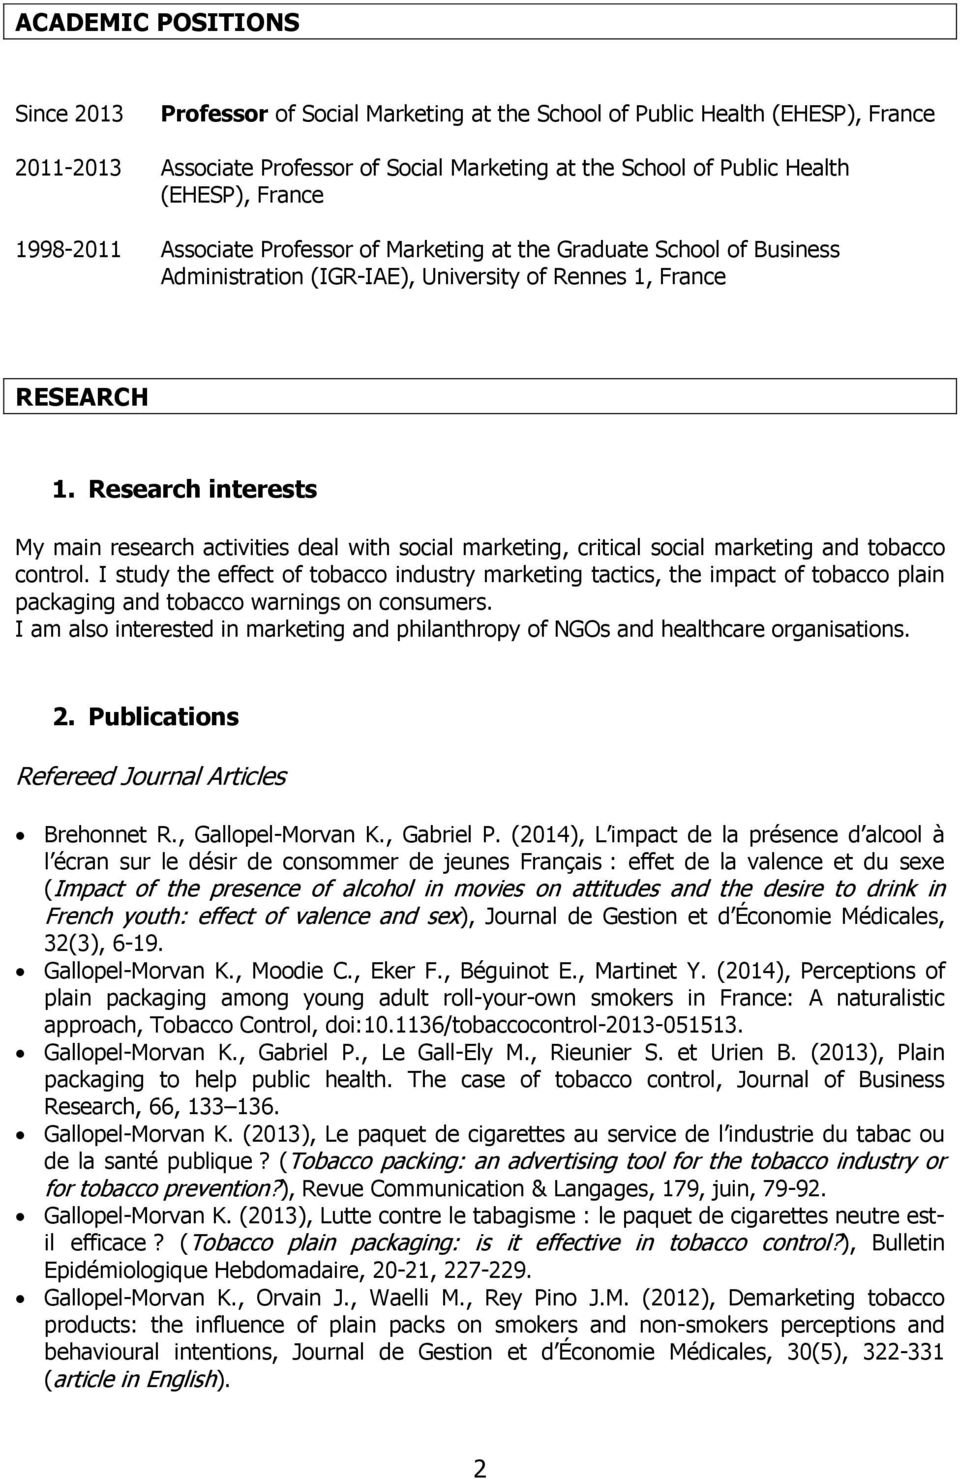 Research interests My main research activities deal with social marketing, critical social marketing and tobacco control.